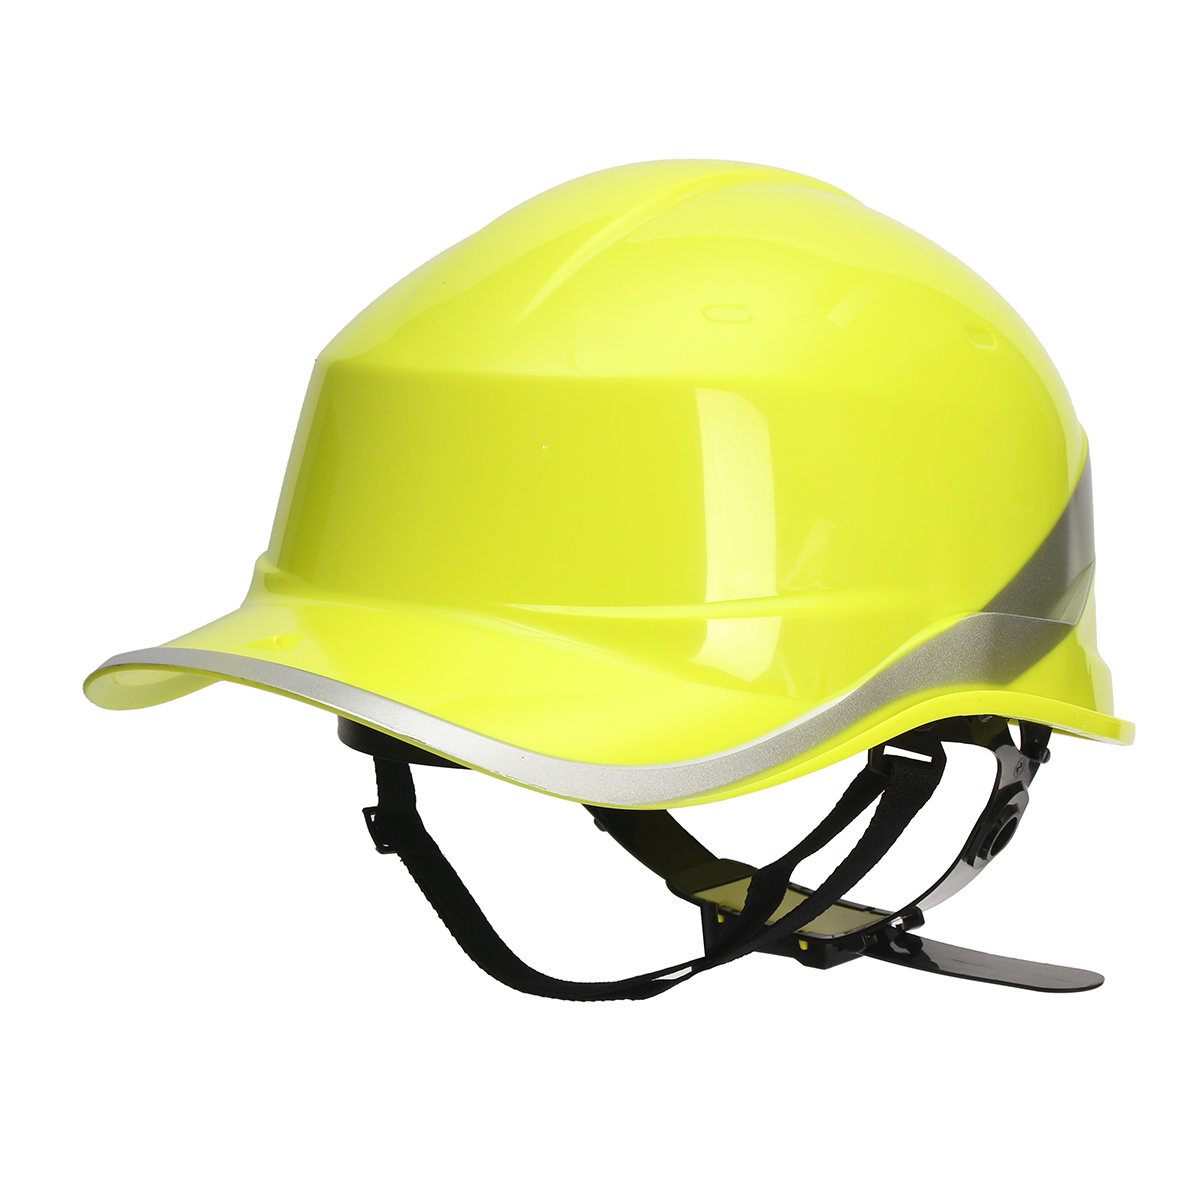 Safety Work Vented Cap 8 Point Standard Shell Ratchet Suspension Hard Hat Vented Construction Ratchet Helmets  for Construction Works